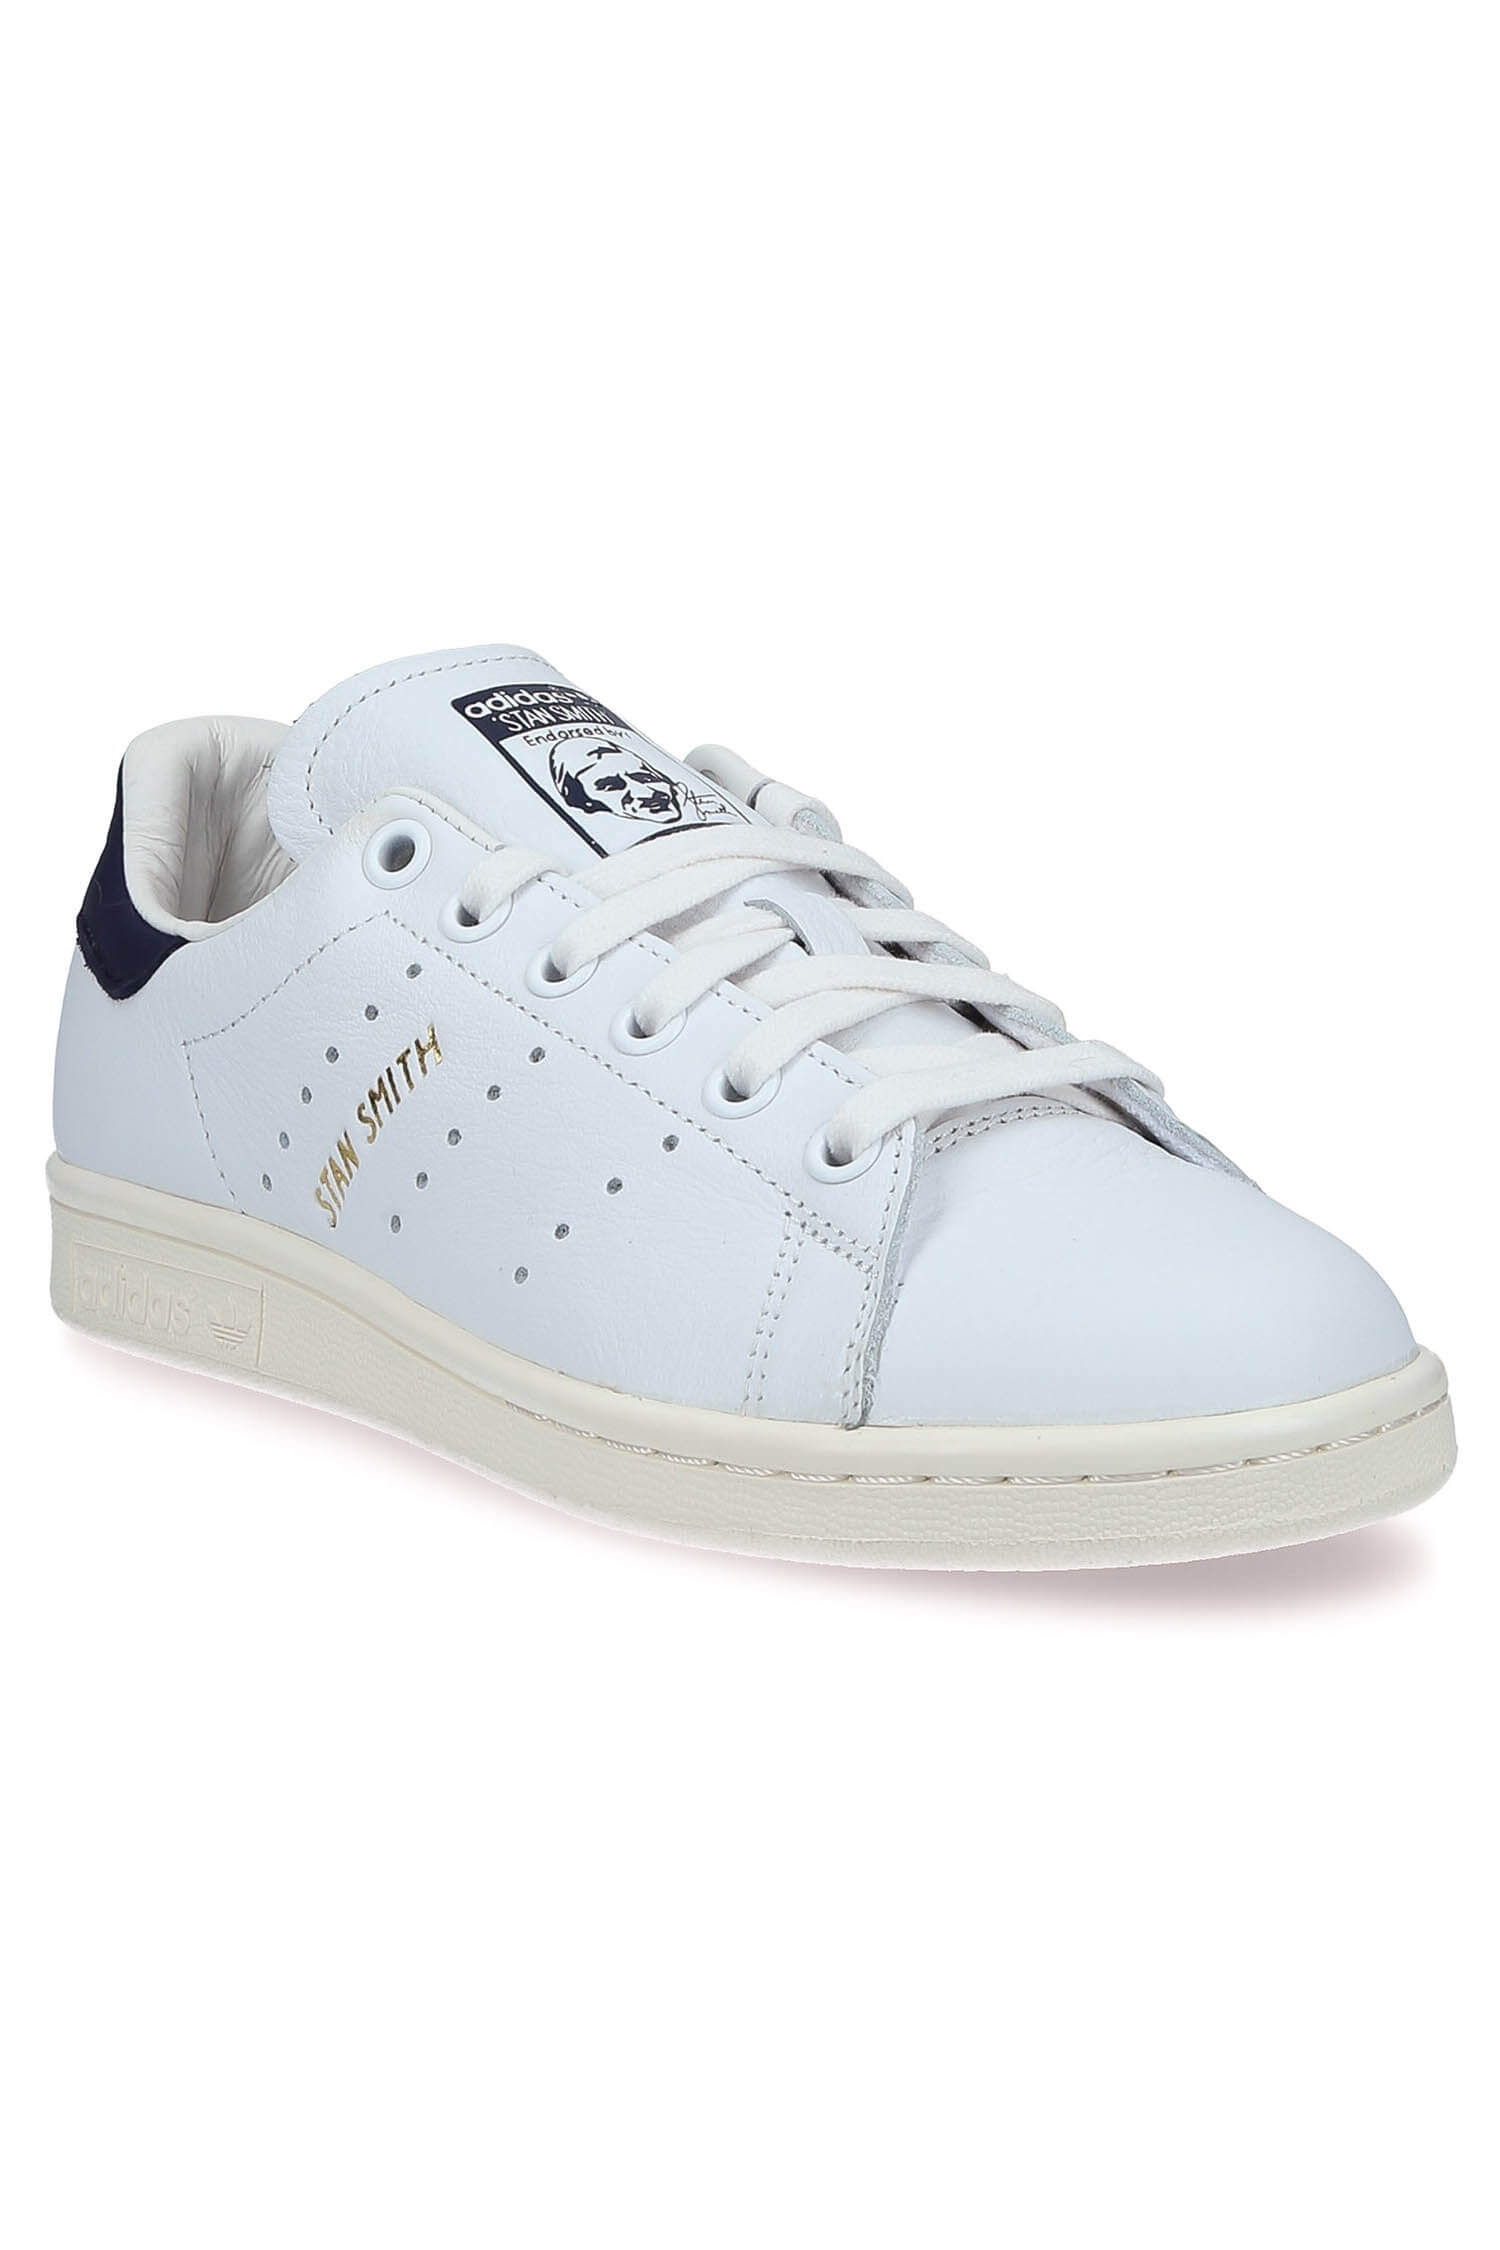 ... Adidas Originals / Stan Smith patch Bleu marine ...